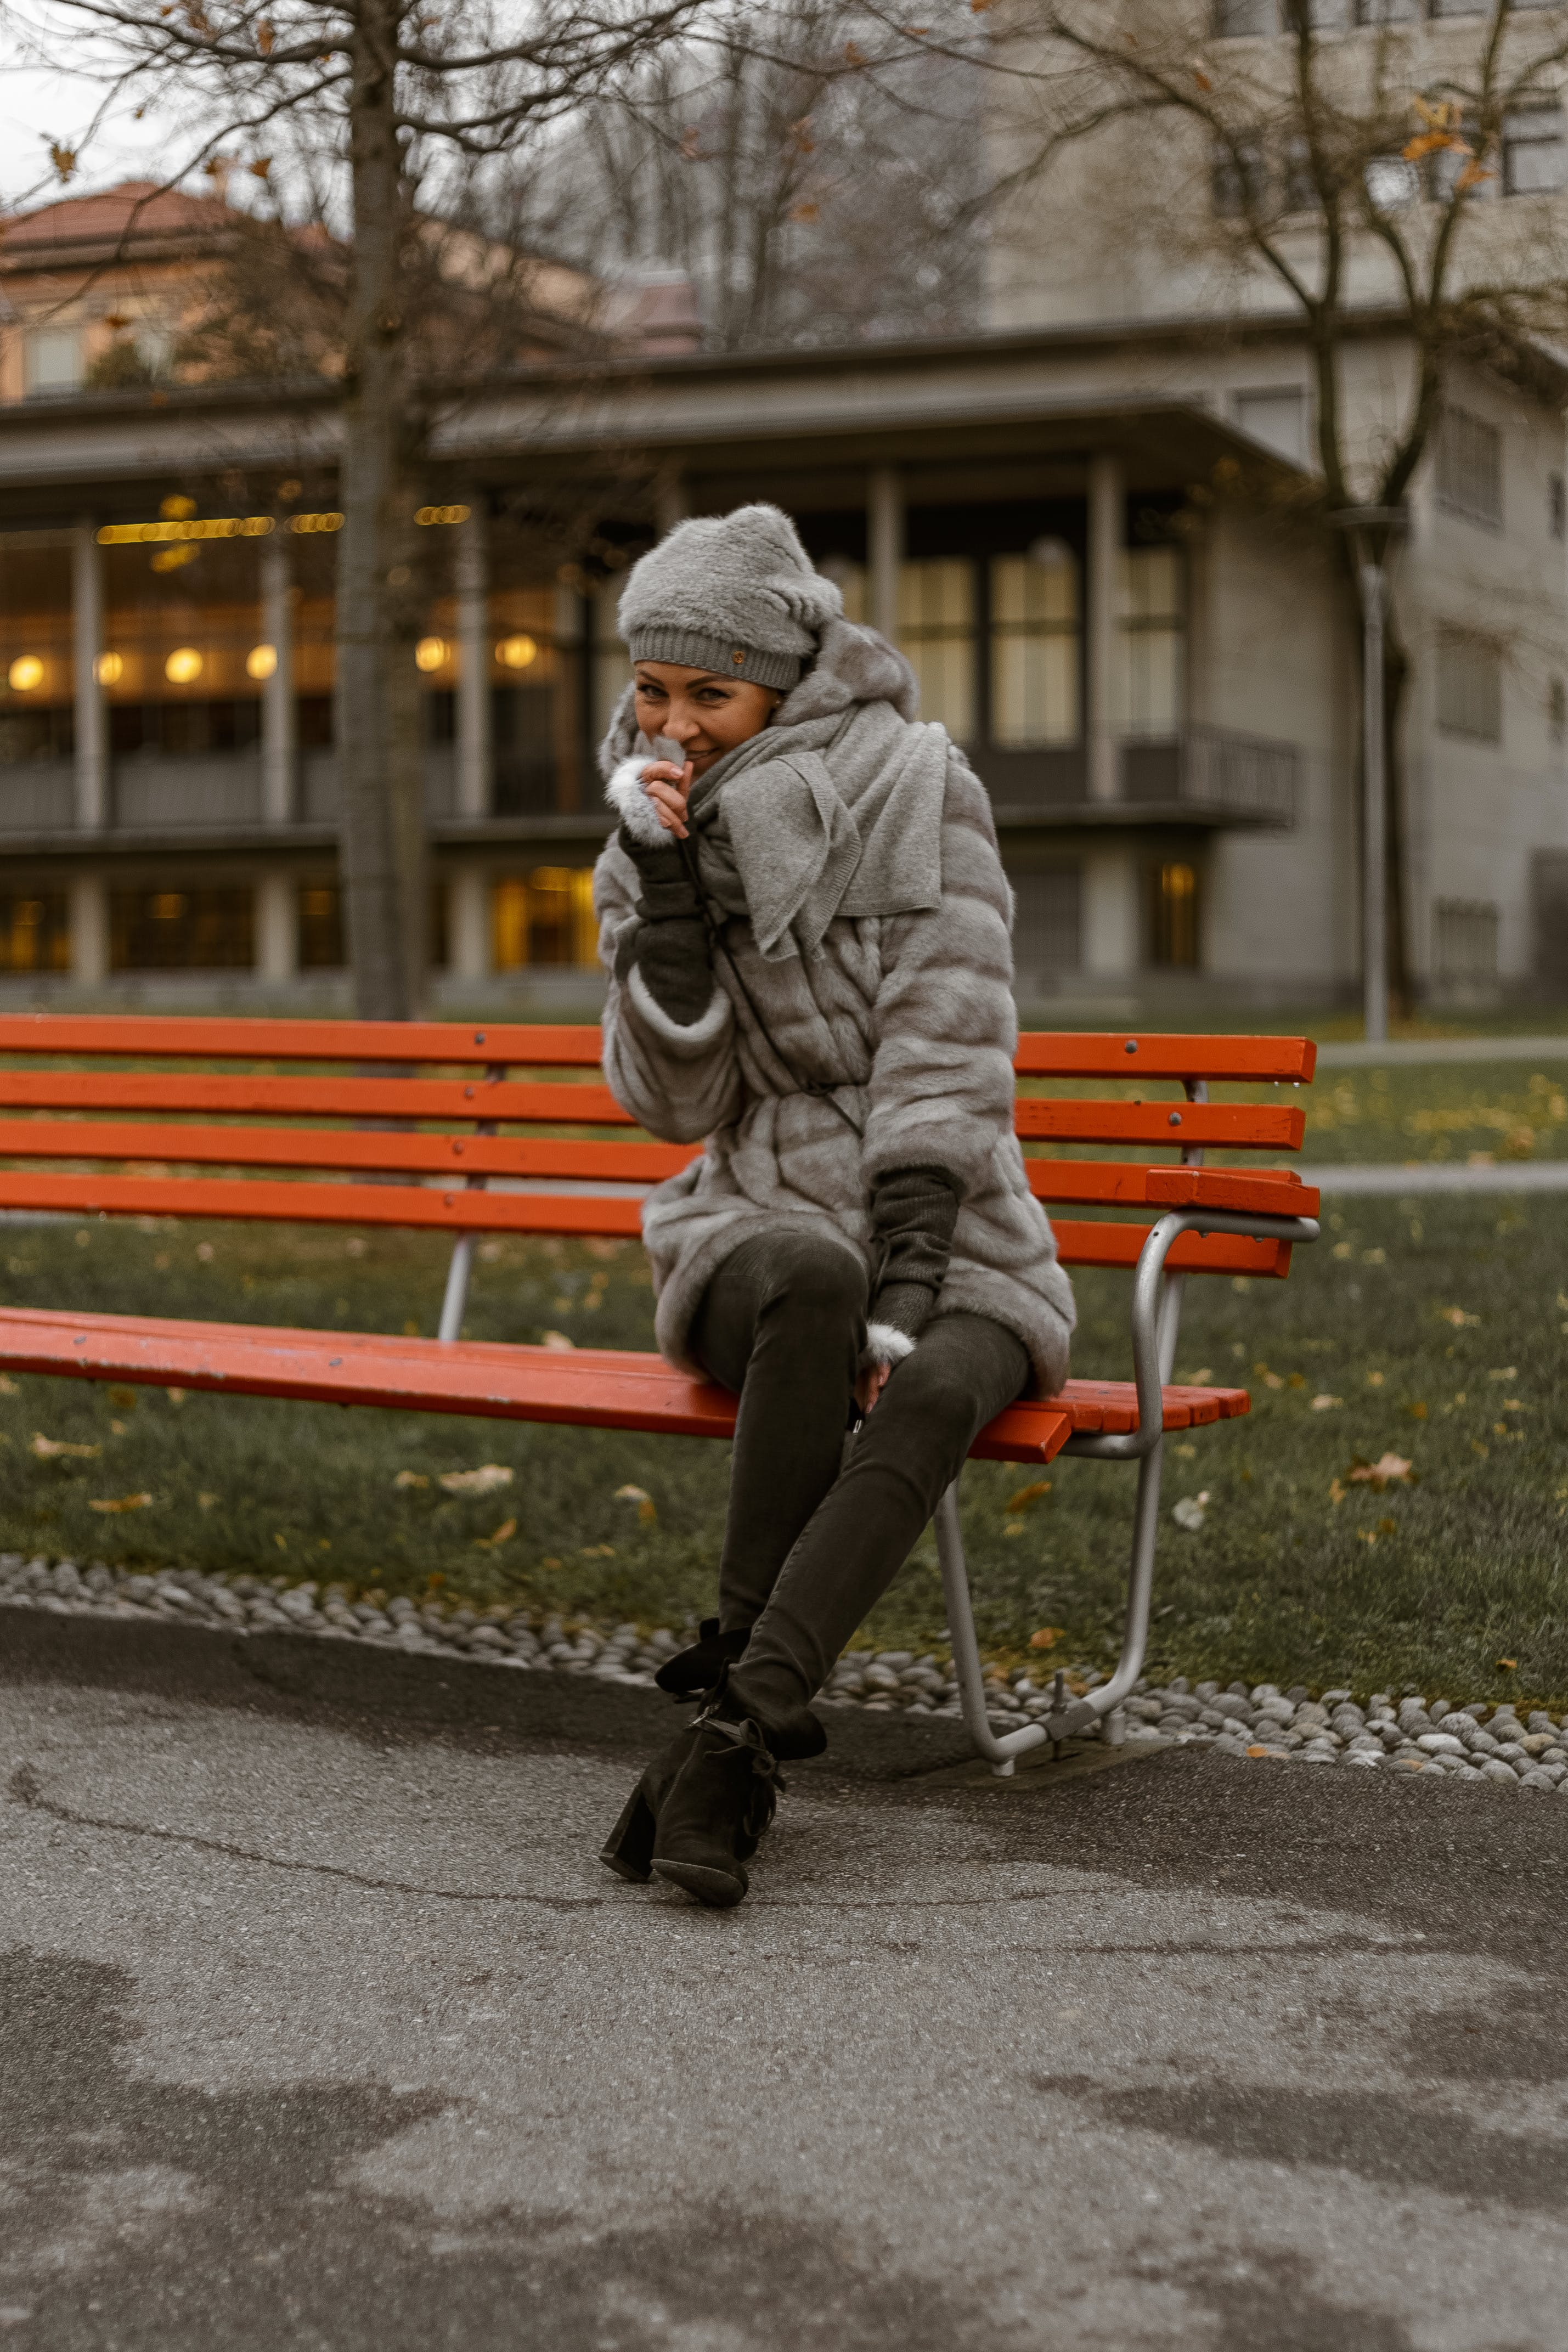 Smiling Photo of Woman Sitting on Park Bench